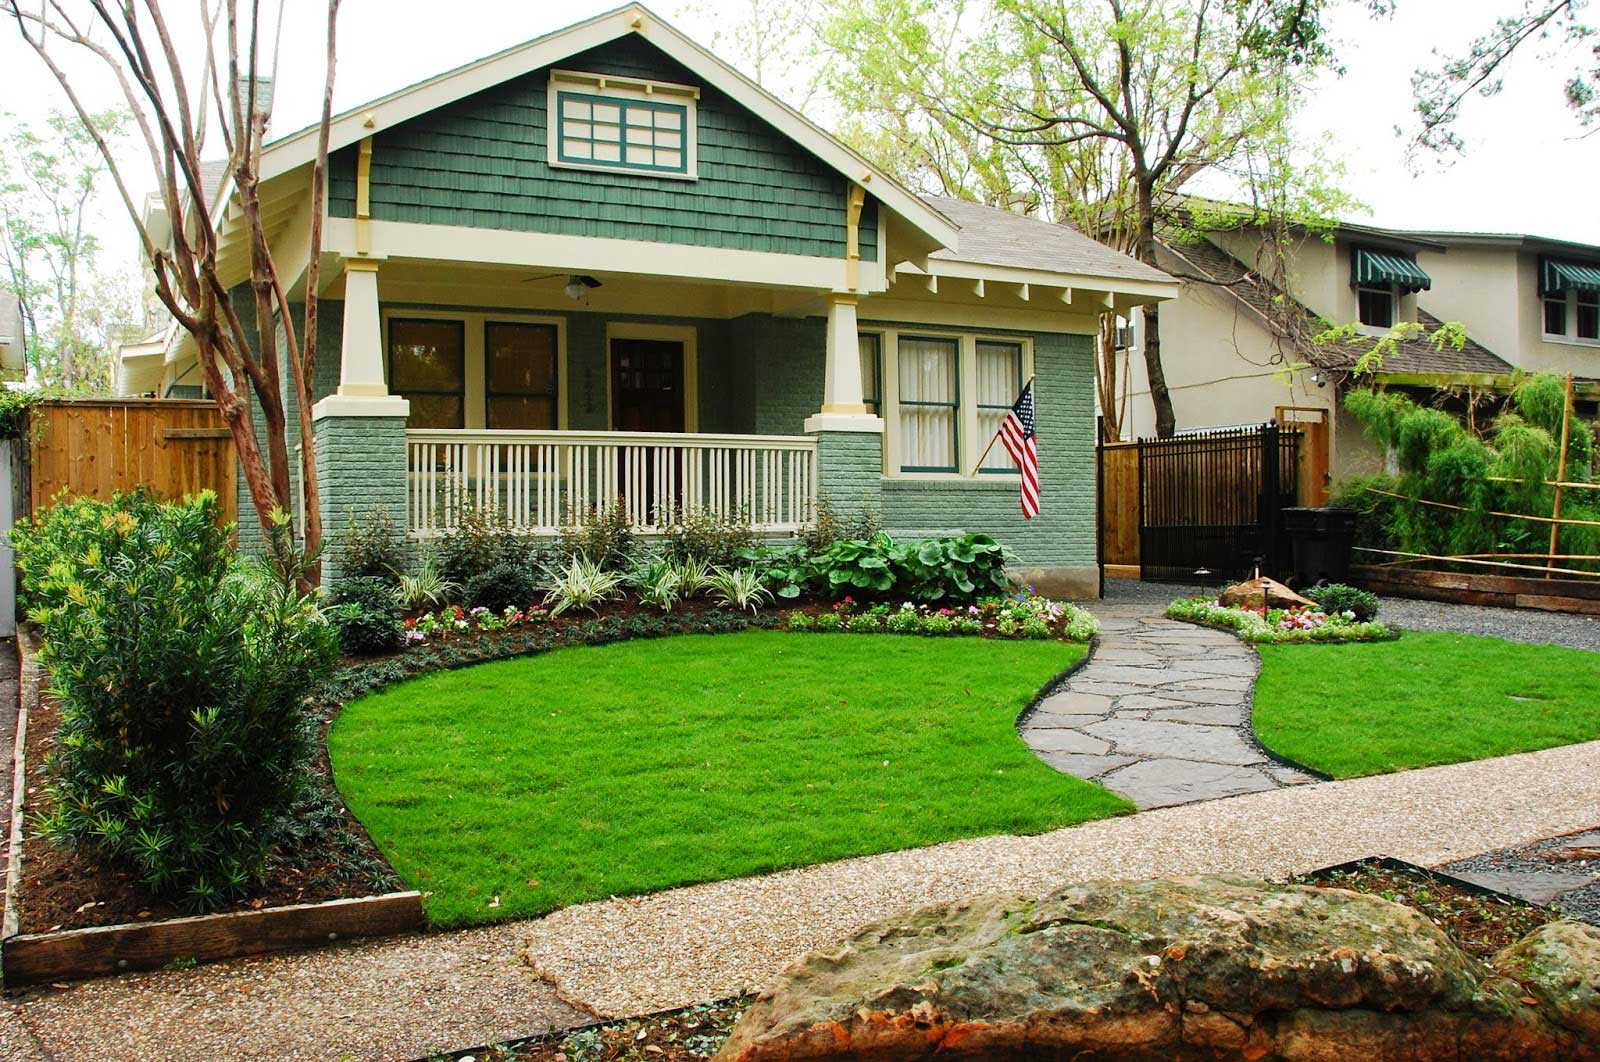 Luxurious Yard With Fresh Grasses also Plants and Concrete Path